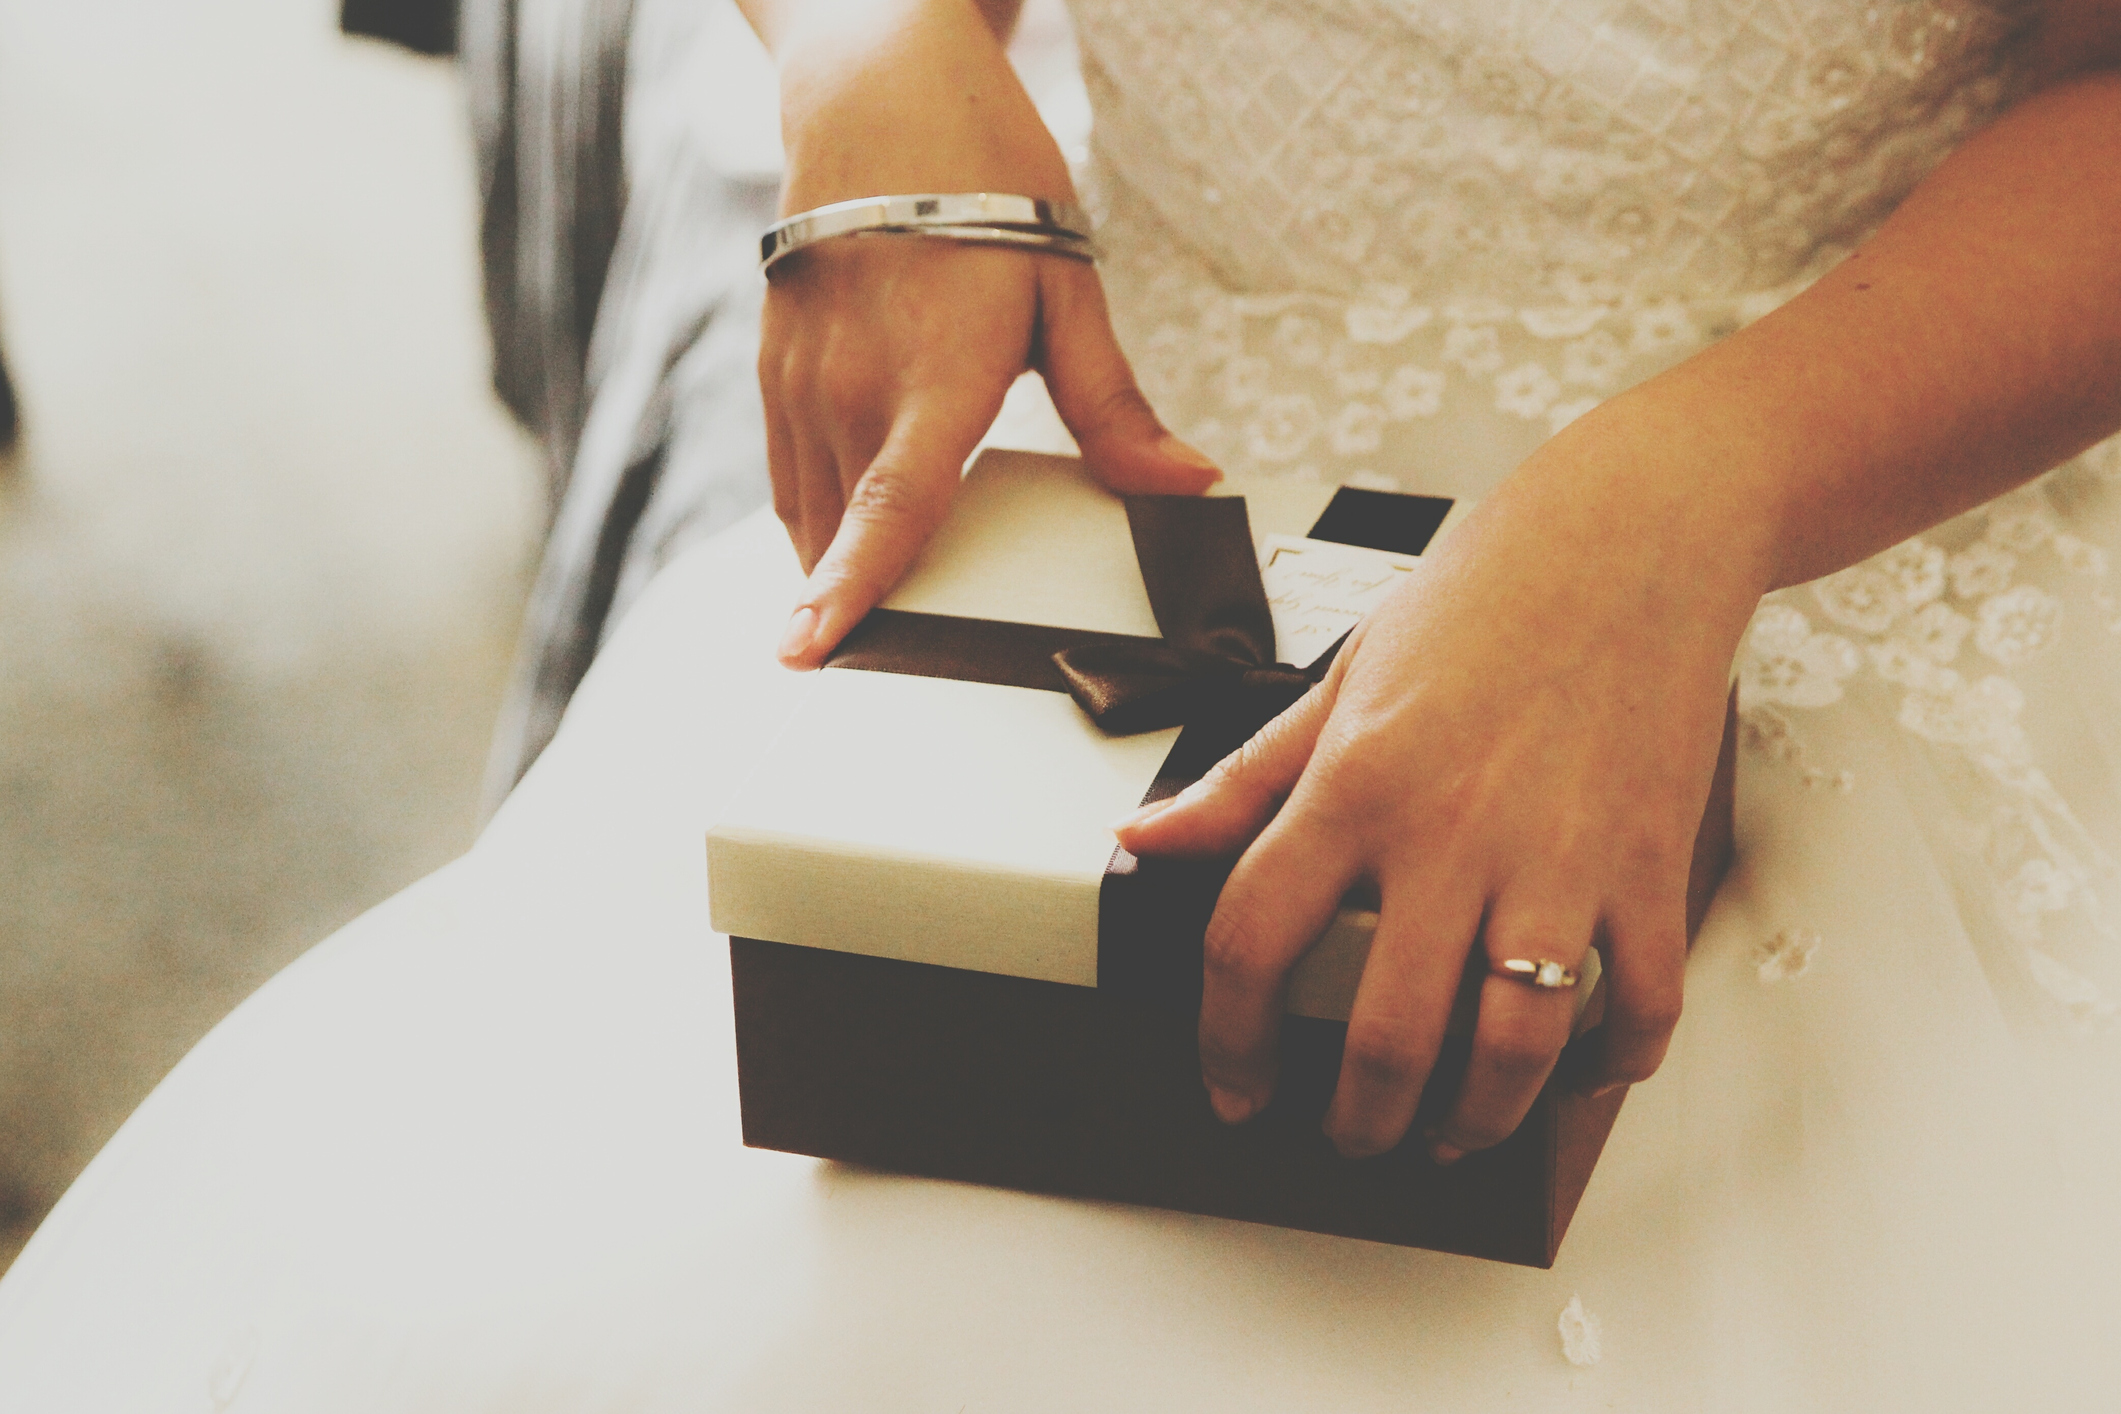 10 thoughtful, useful items millennials will actually want to receive as a wedding gift